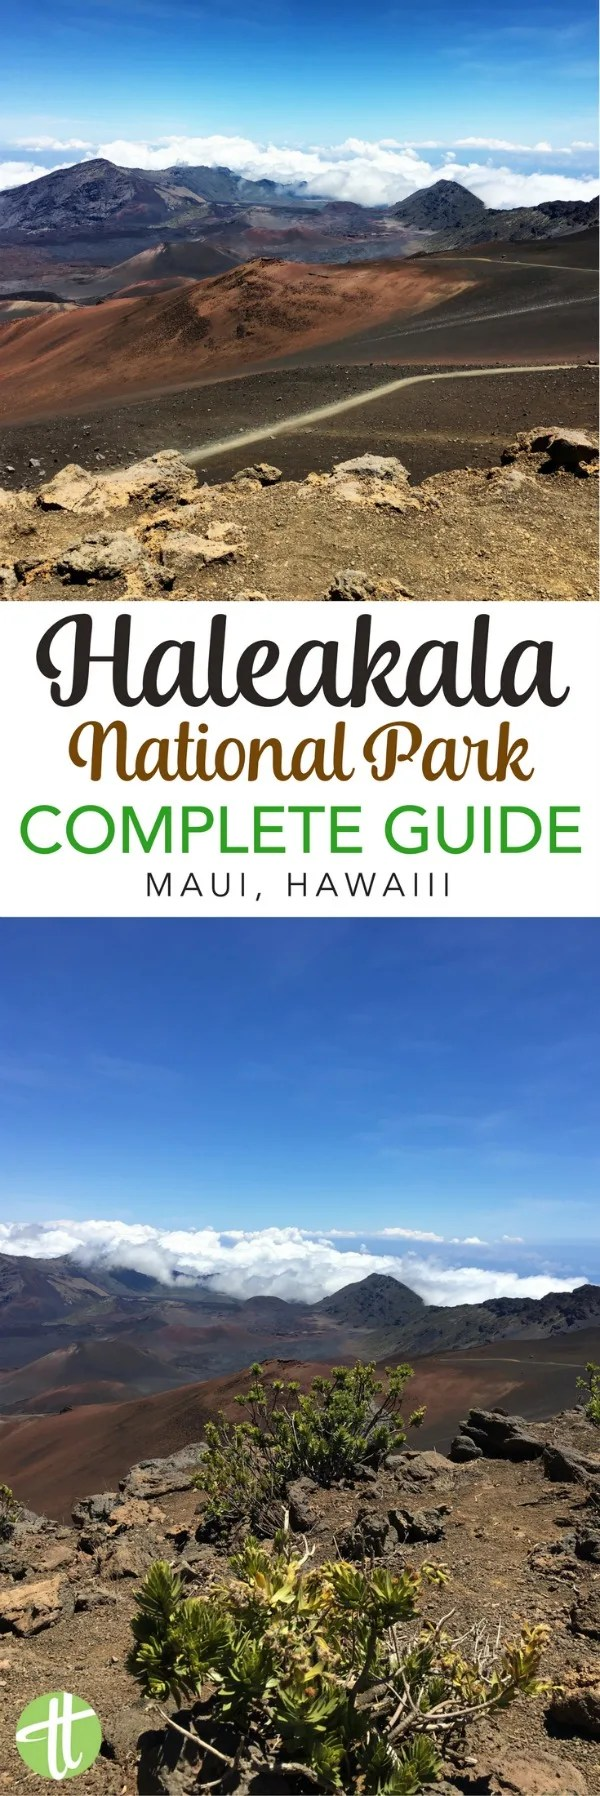 The Ultimate Guide to Haleakala National Park in Maui, Hawaii. Important travel tips whether you are hiking the volcano crater, biking down the summit, planning a sunrise or sunset visit, or considering your tour and driving options.